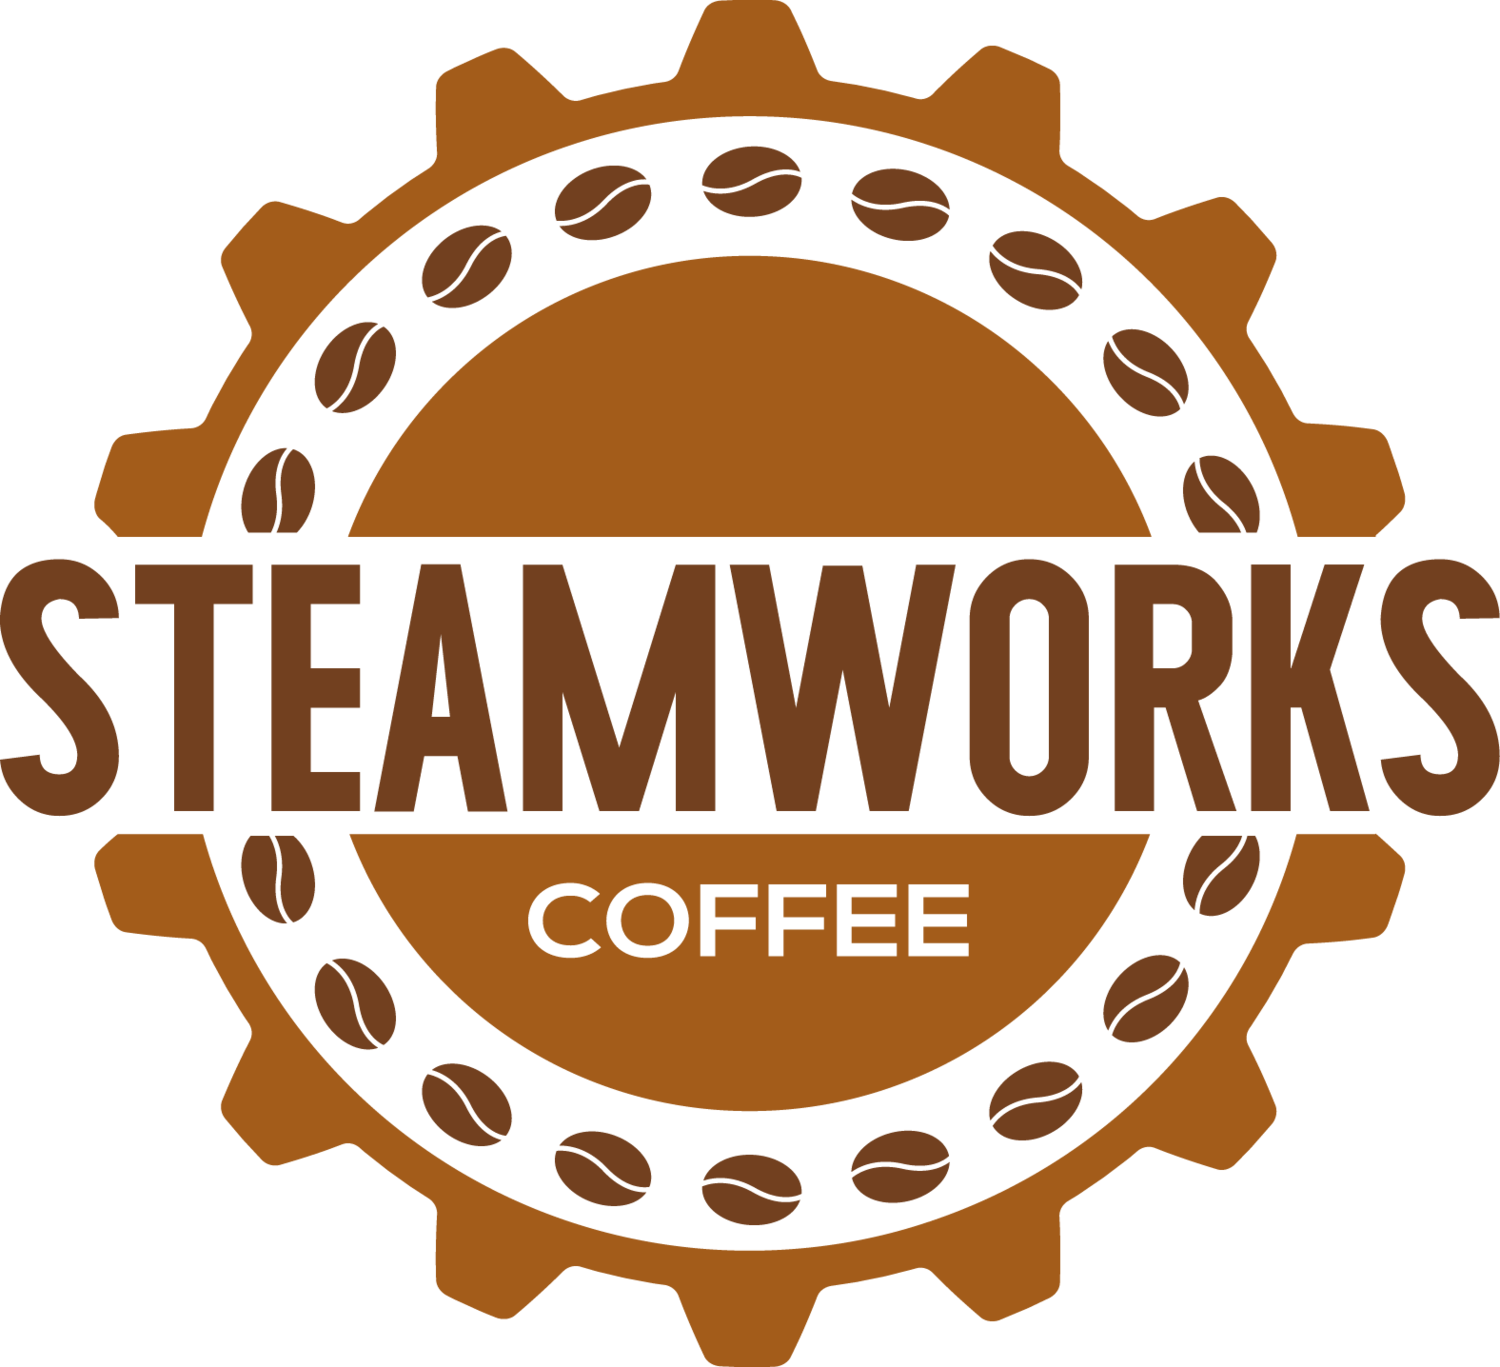 Steamworks Craft Roasted Specialty Coffee